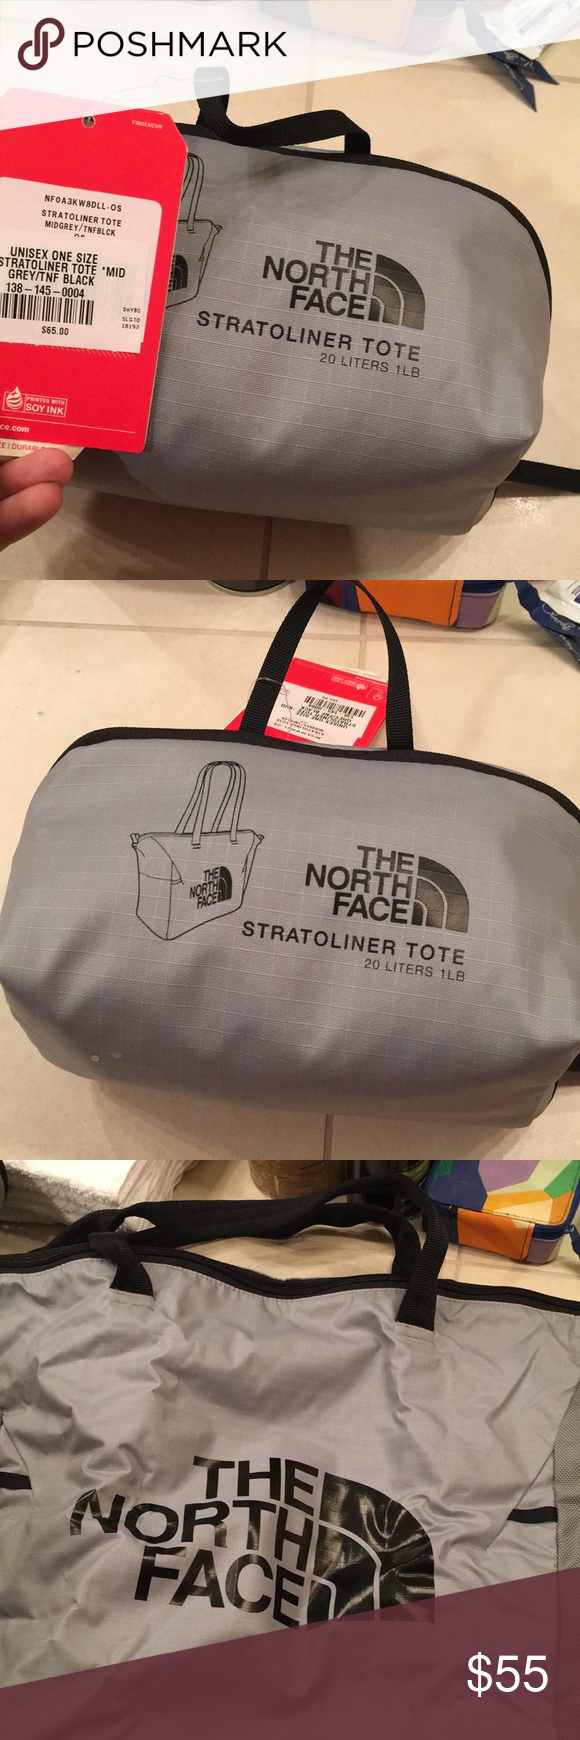 8442aa71b The North Face Stratoliner Tote bag Grey The North Face brand new never  used tote bag. Holds 20 Liters really nice. The North Face Bags Totes